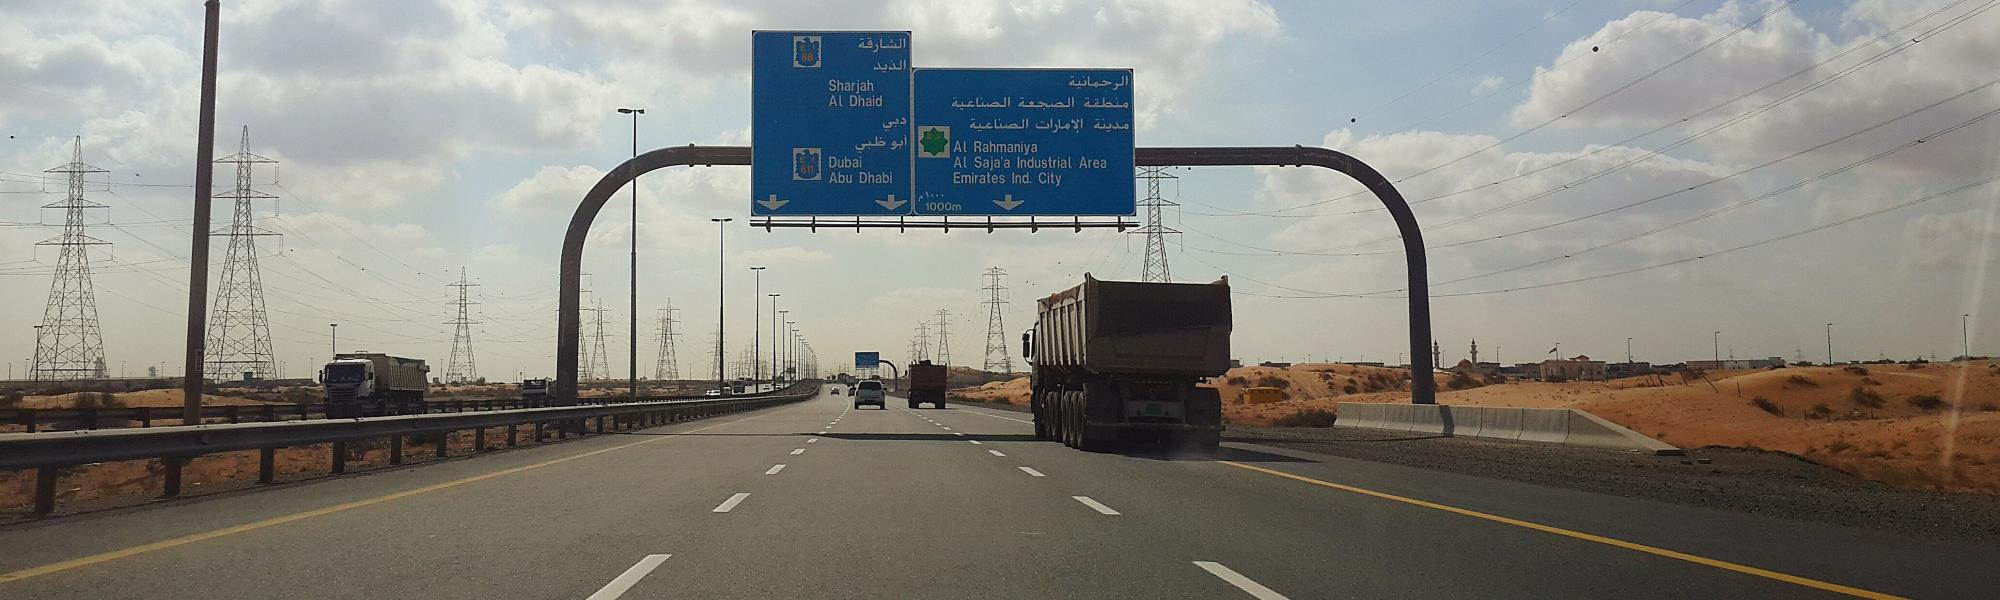 First Saudi TIR export shipment speeds across UAE border